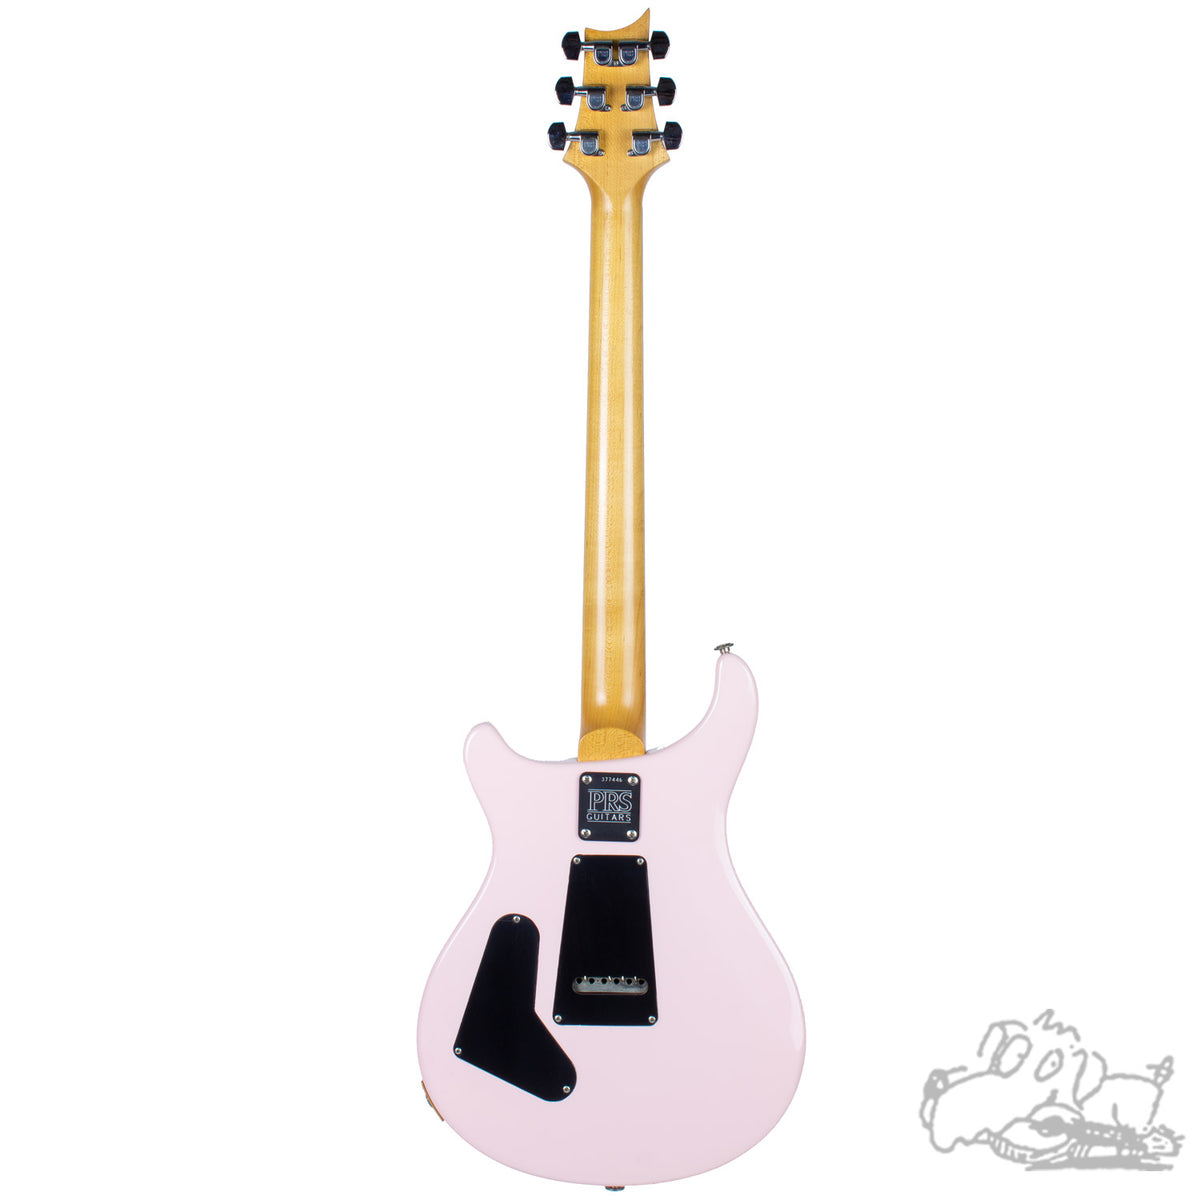 1993 PRS CE in Bonni Pink